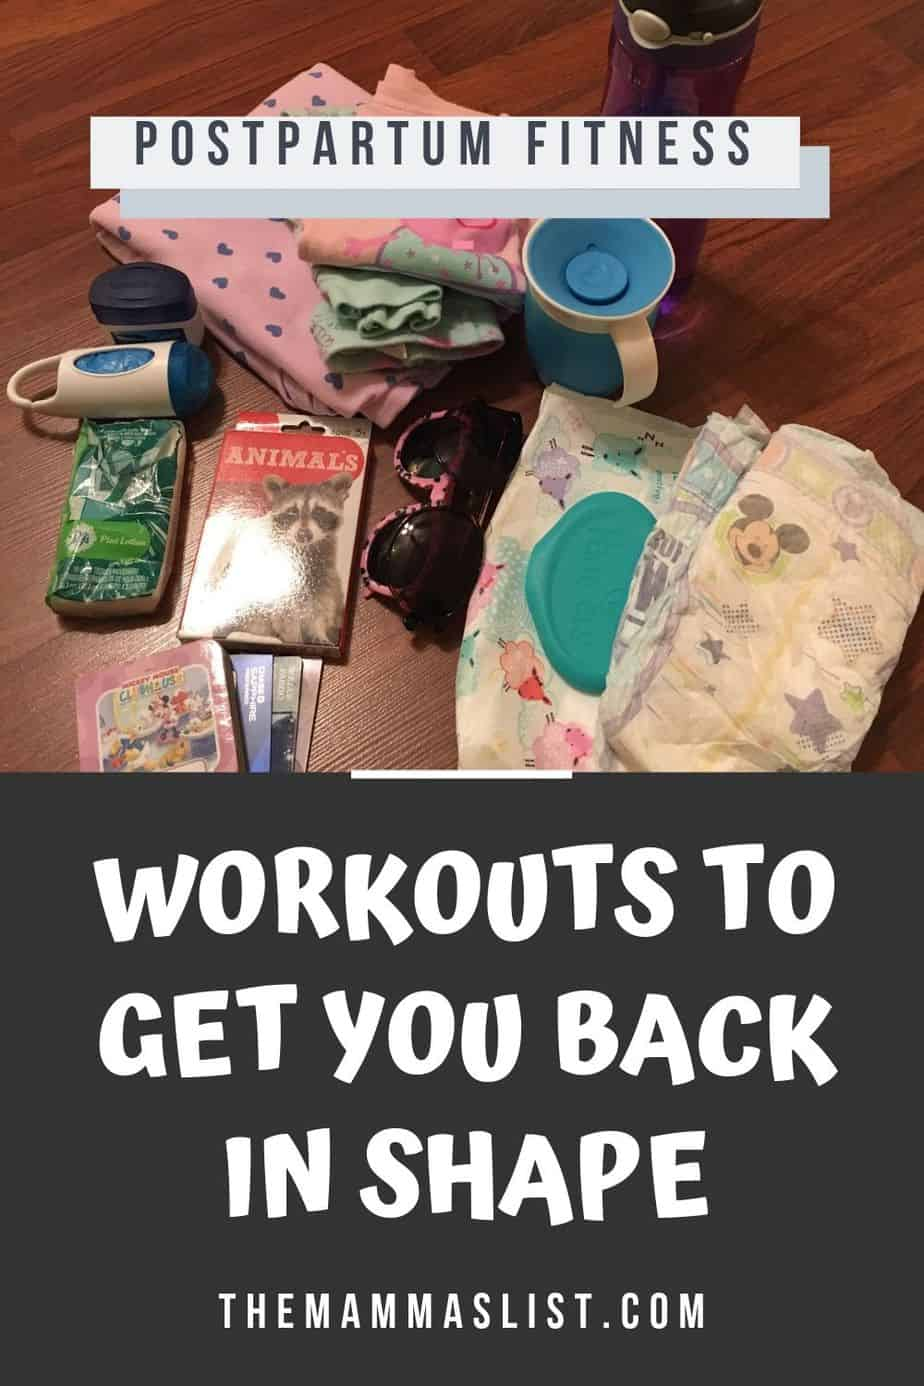 Getting back in shape after a baby is a priority for many moms, but without time to go to the gym it can be hard to fit in fitness. Check out these great videos and workout plans you can do from home, and some even incorporate your baby! Get your body back with these postpartum workout plans.